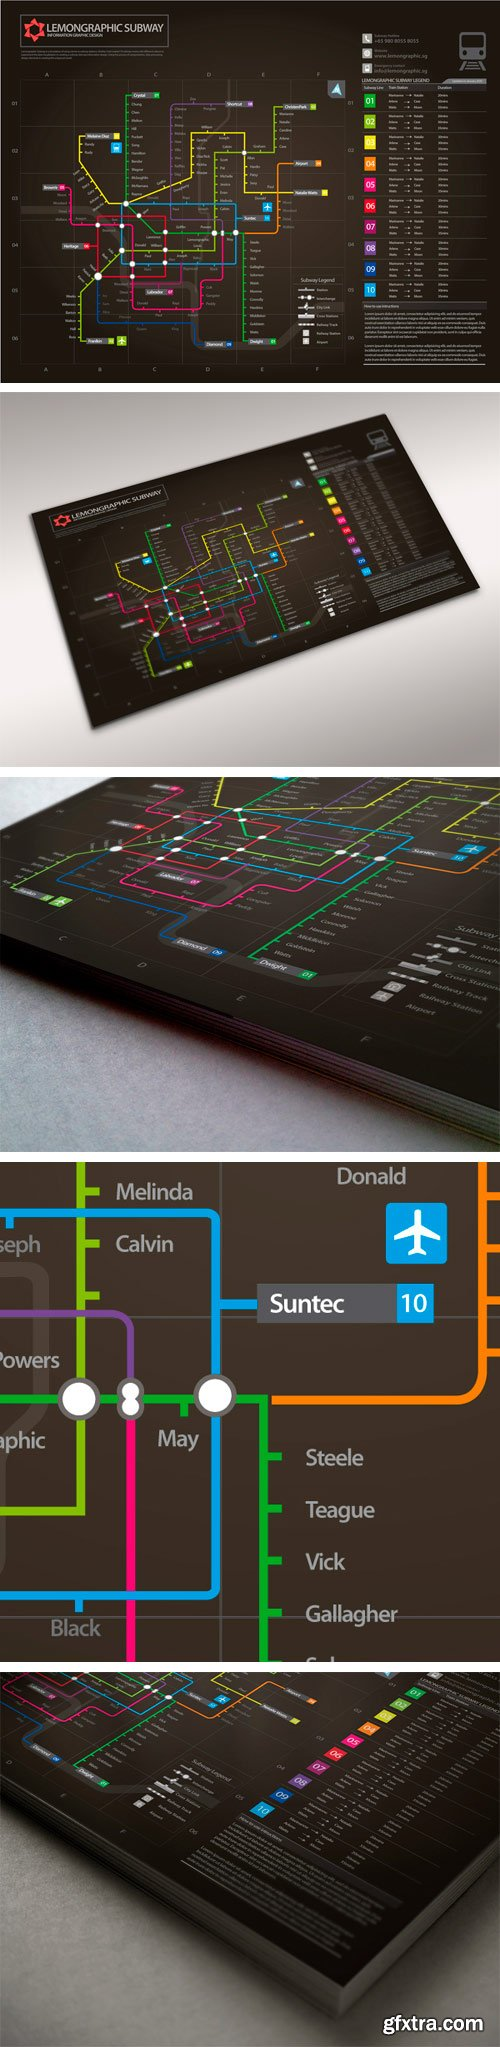 CM 143801 - Neon Subway Map Information Design